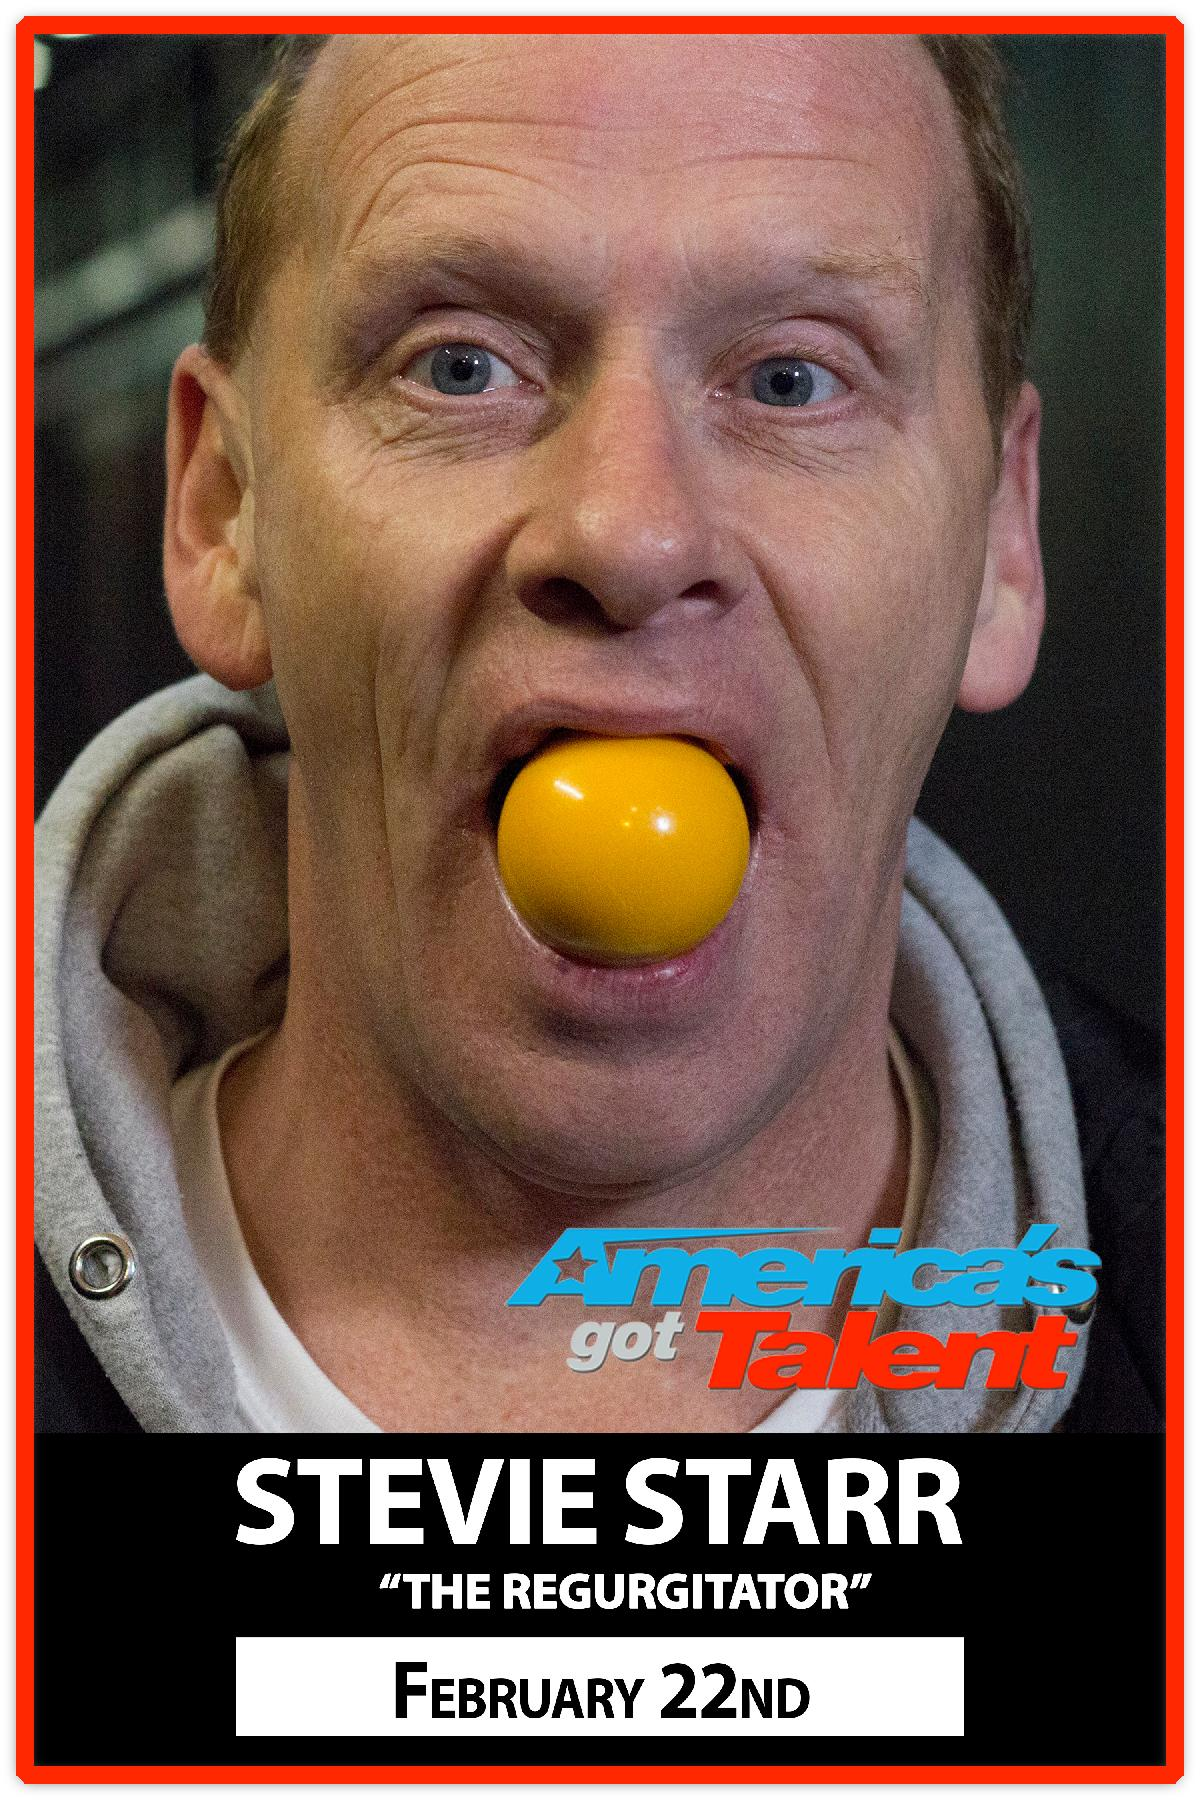 the Regurgitator Stevie Starr Feb 22